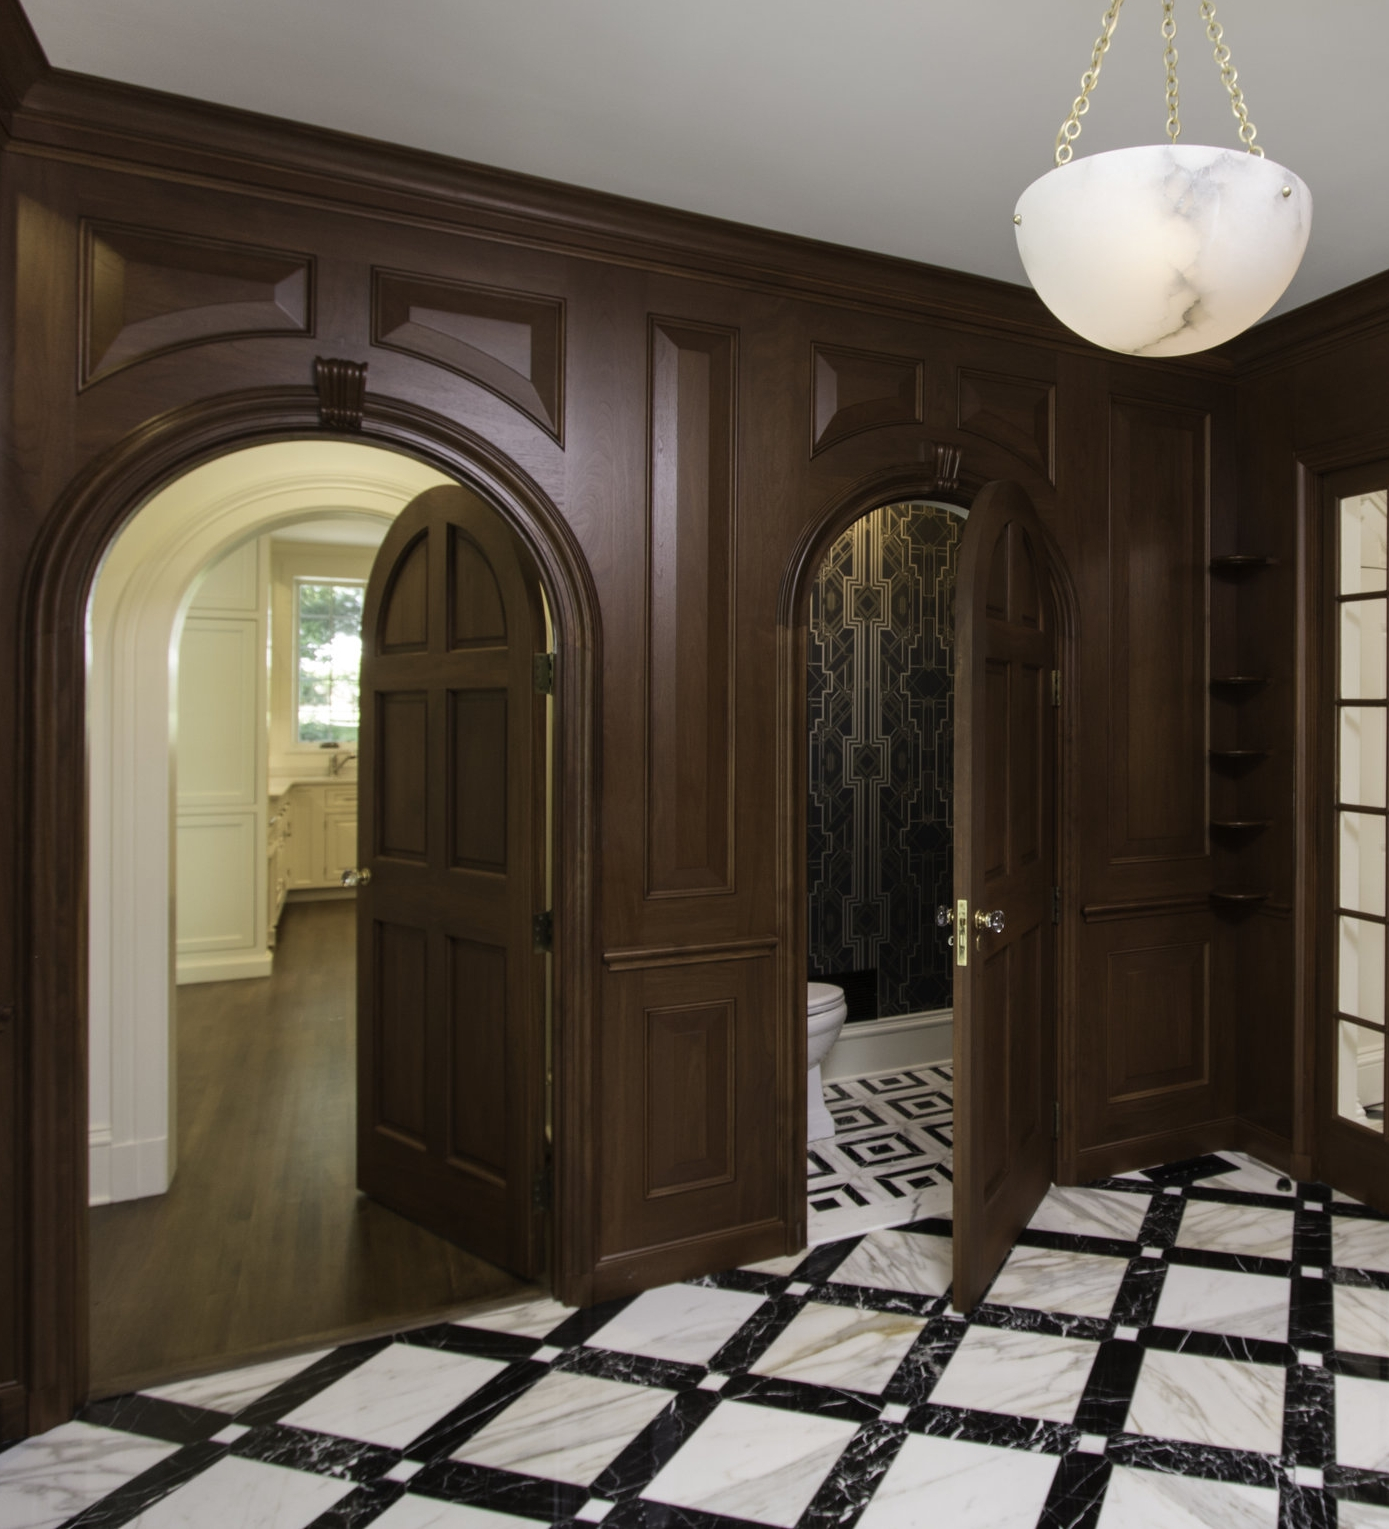 Kitchen, Bath and INTERIOR DESIGN SERVICES - Investments starting at $25KSpace planning, kitchen and bath design and interior detailing; period-specific architectural moulding and detail design; detailing of finishes and built-in features; color, pattern and material selection and coordination. Procurement of furnishings and soft goods upon request.